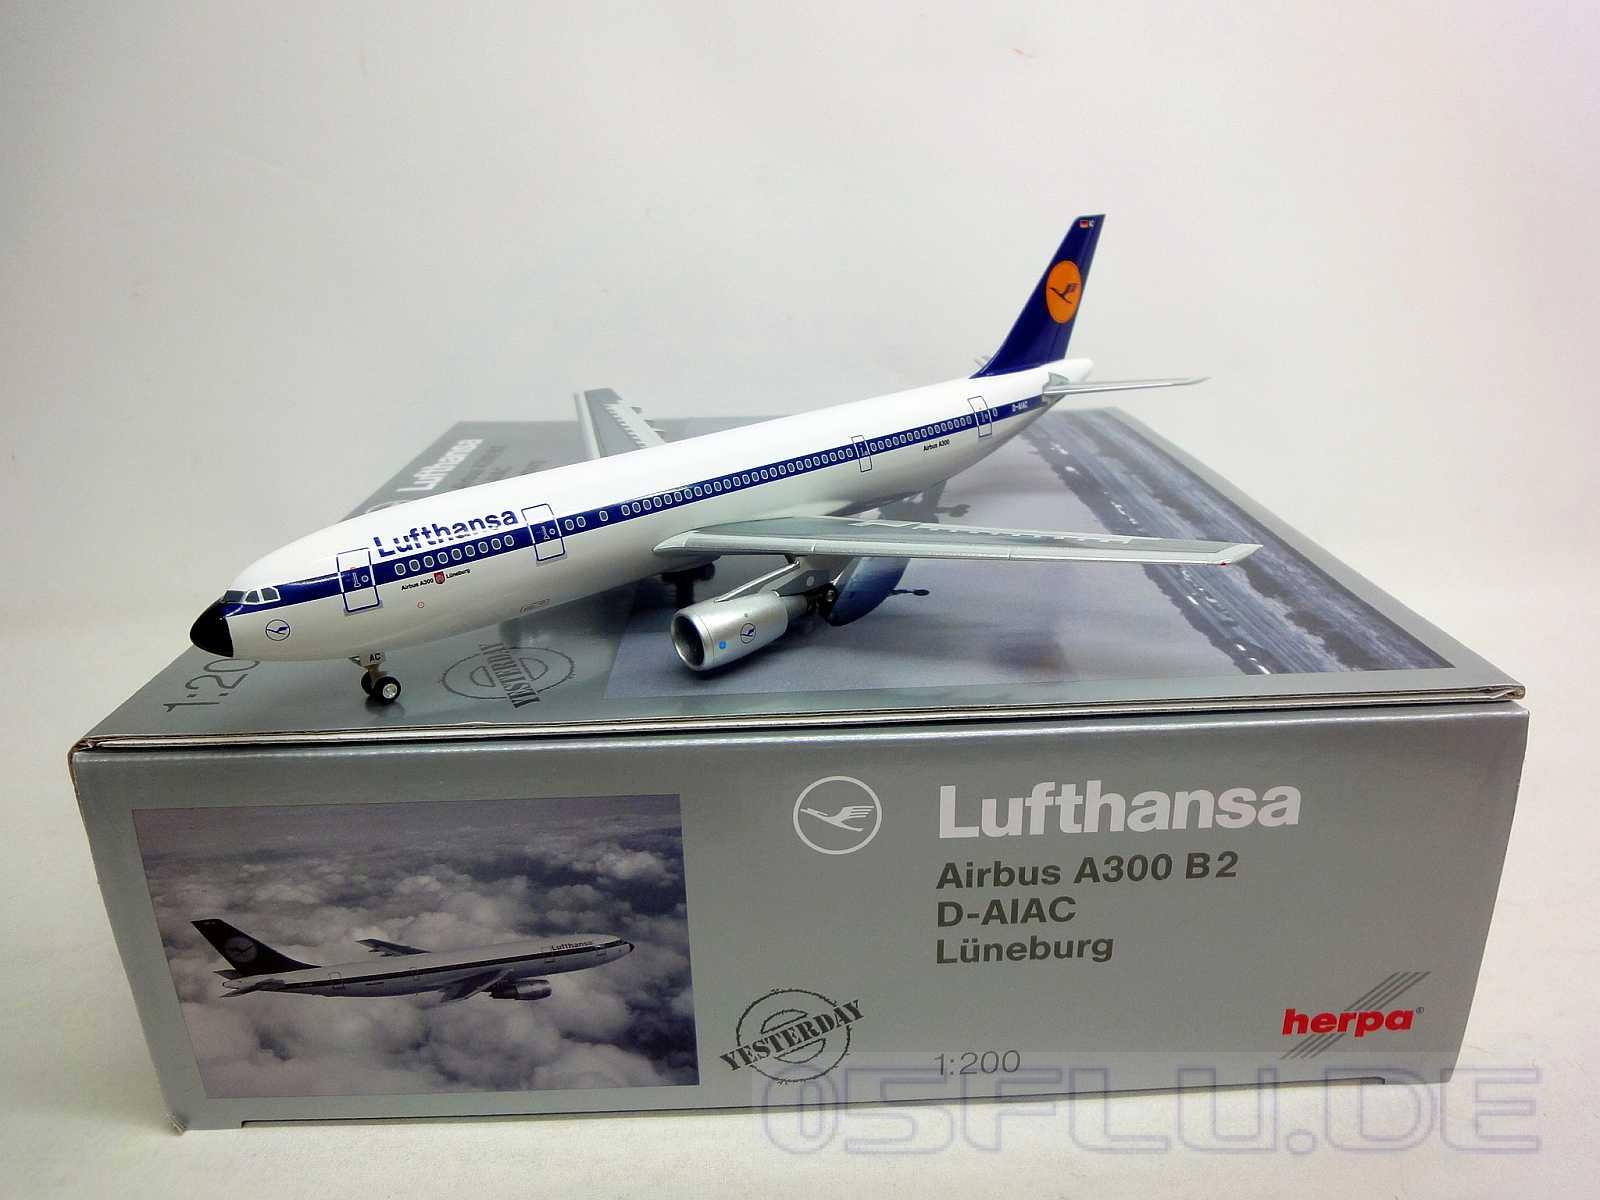 herpa 1 200 556057 lufthansa airbus a300b2 neu ebay. Black Bedroom Furniture Sets. Home Design Ideas